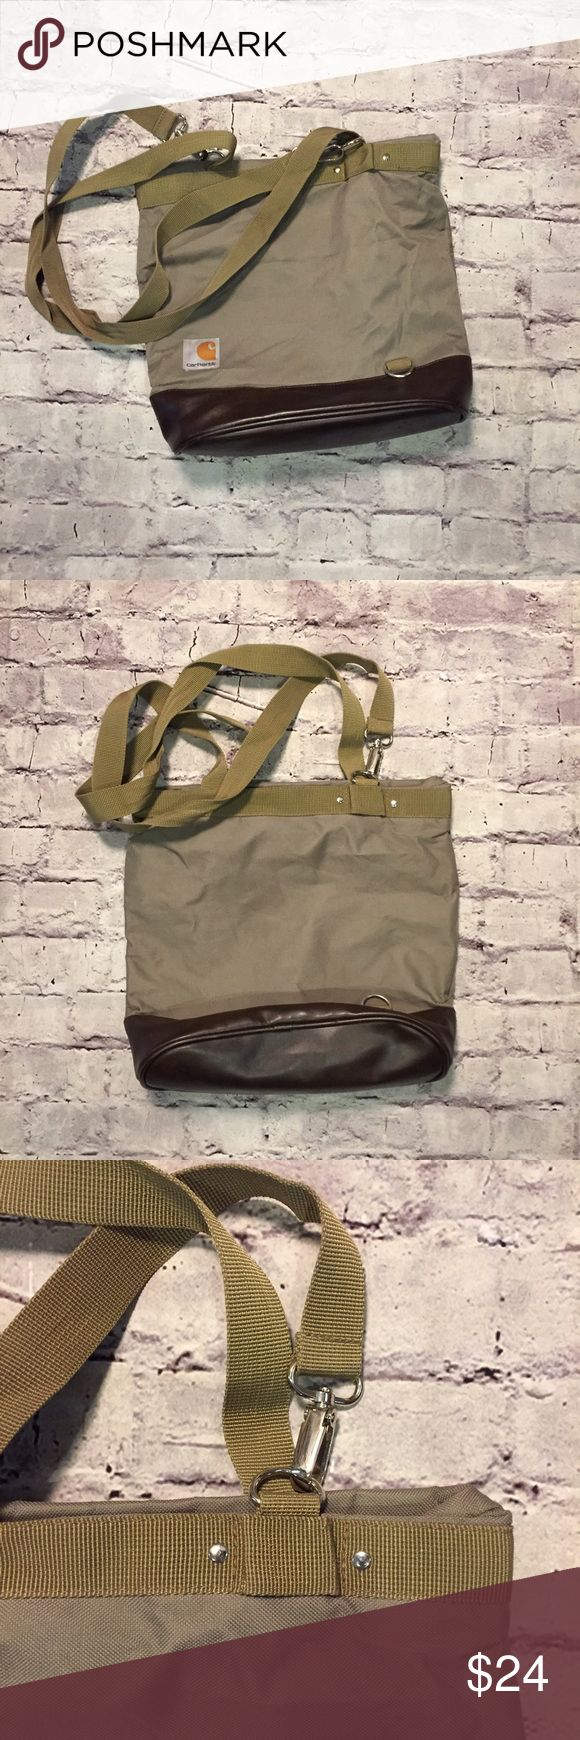 Canvas Carhartt Tote Bag Versatile Carhartt Women's Tote Handbag in great condition. Some inside wear (will improve with cleaning). See photos for complete condition information. Carhartt Bags Totes